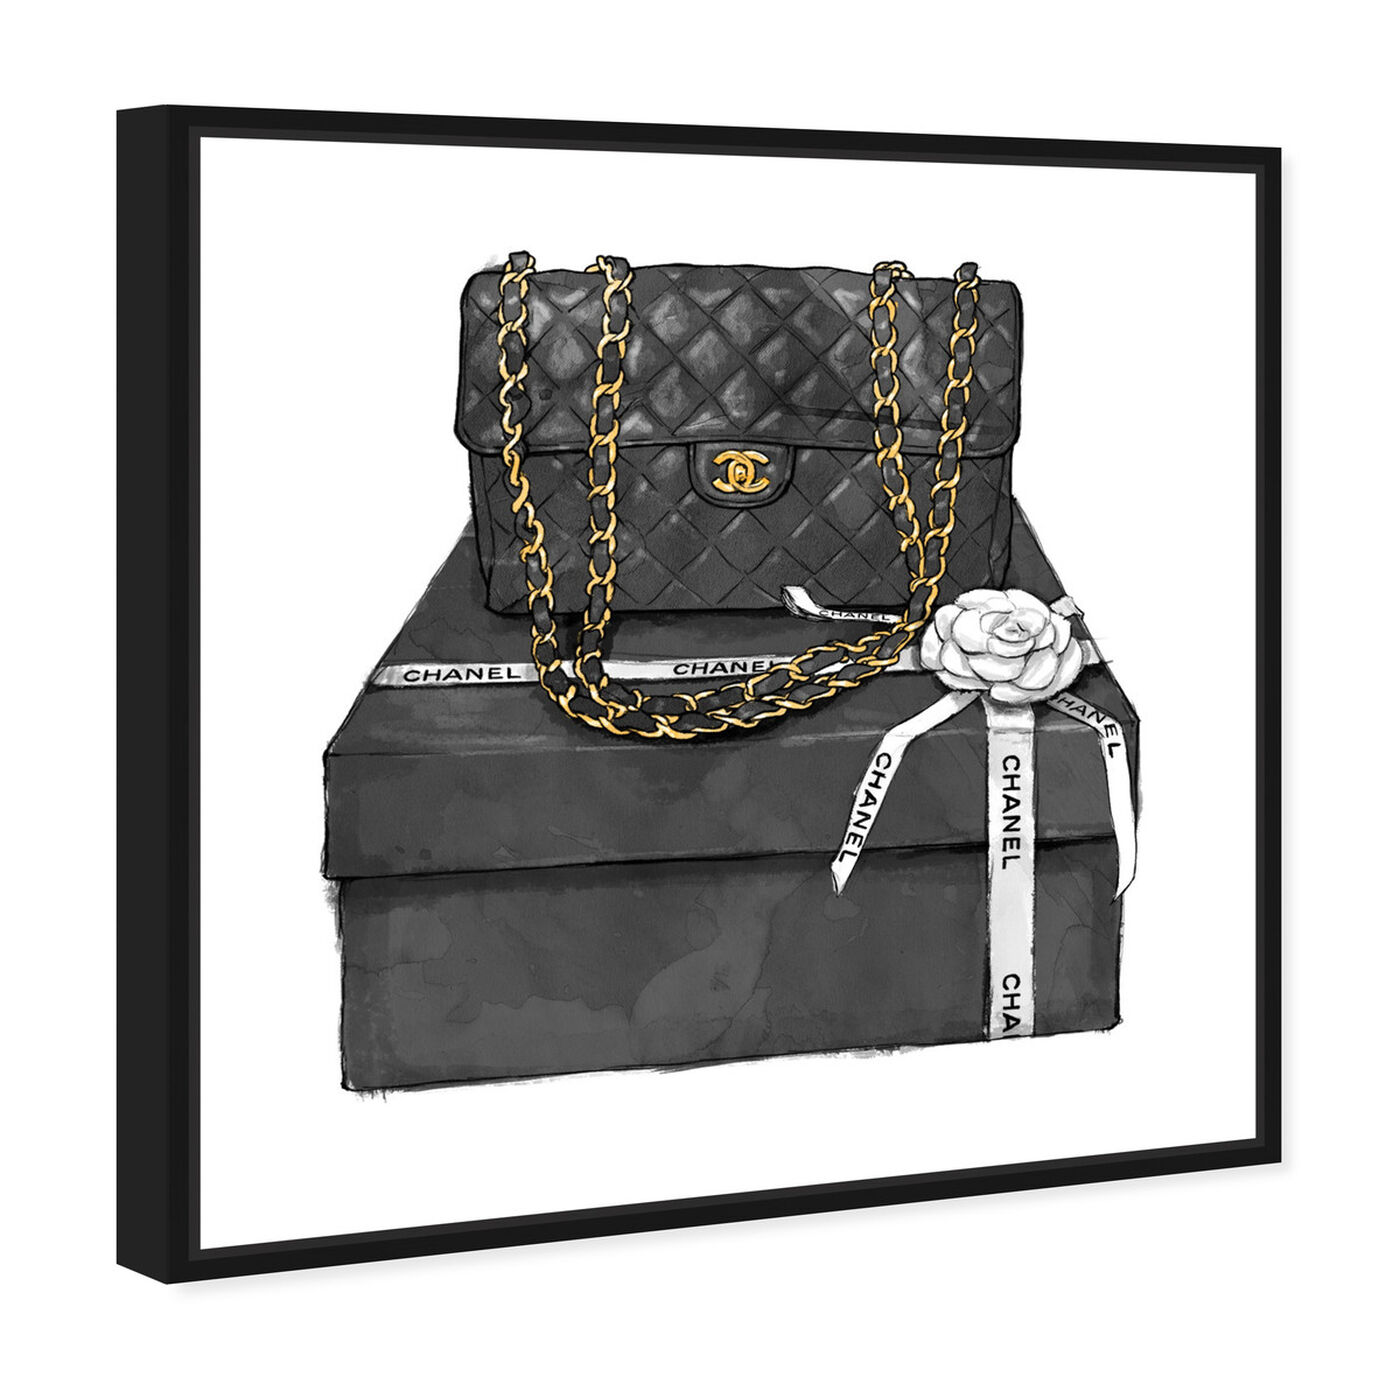 Angled view of Boxed Beauty featuring fashion and glam and handbags art.